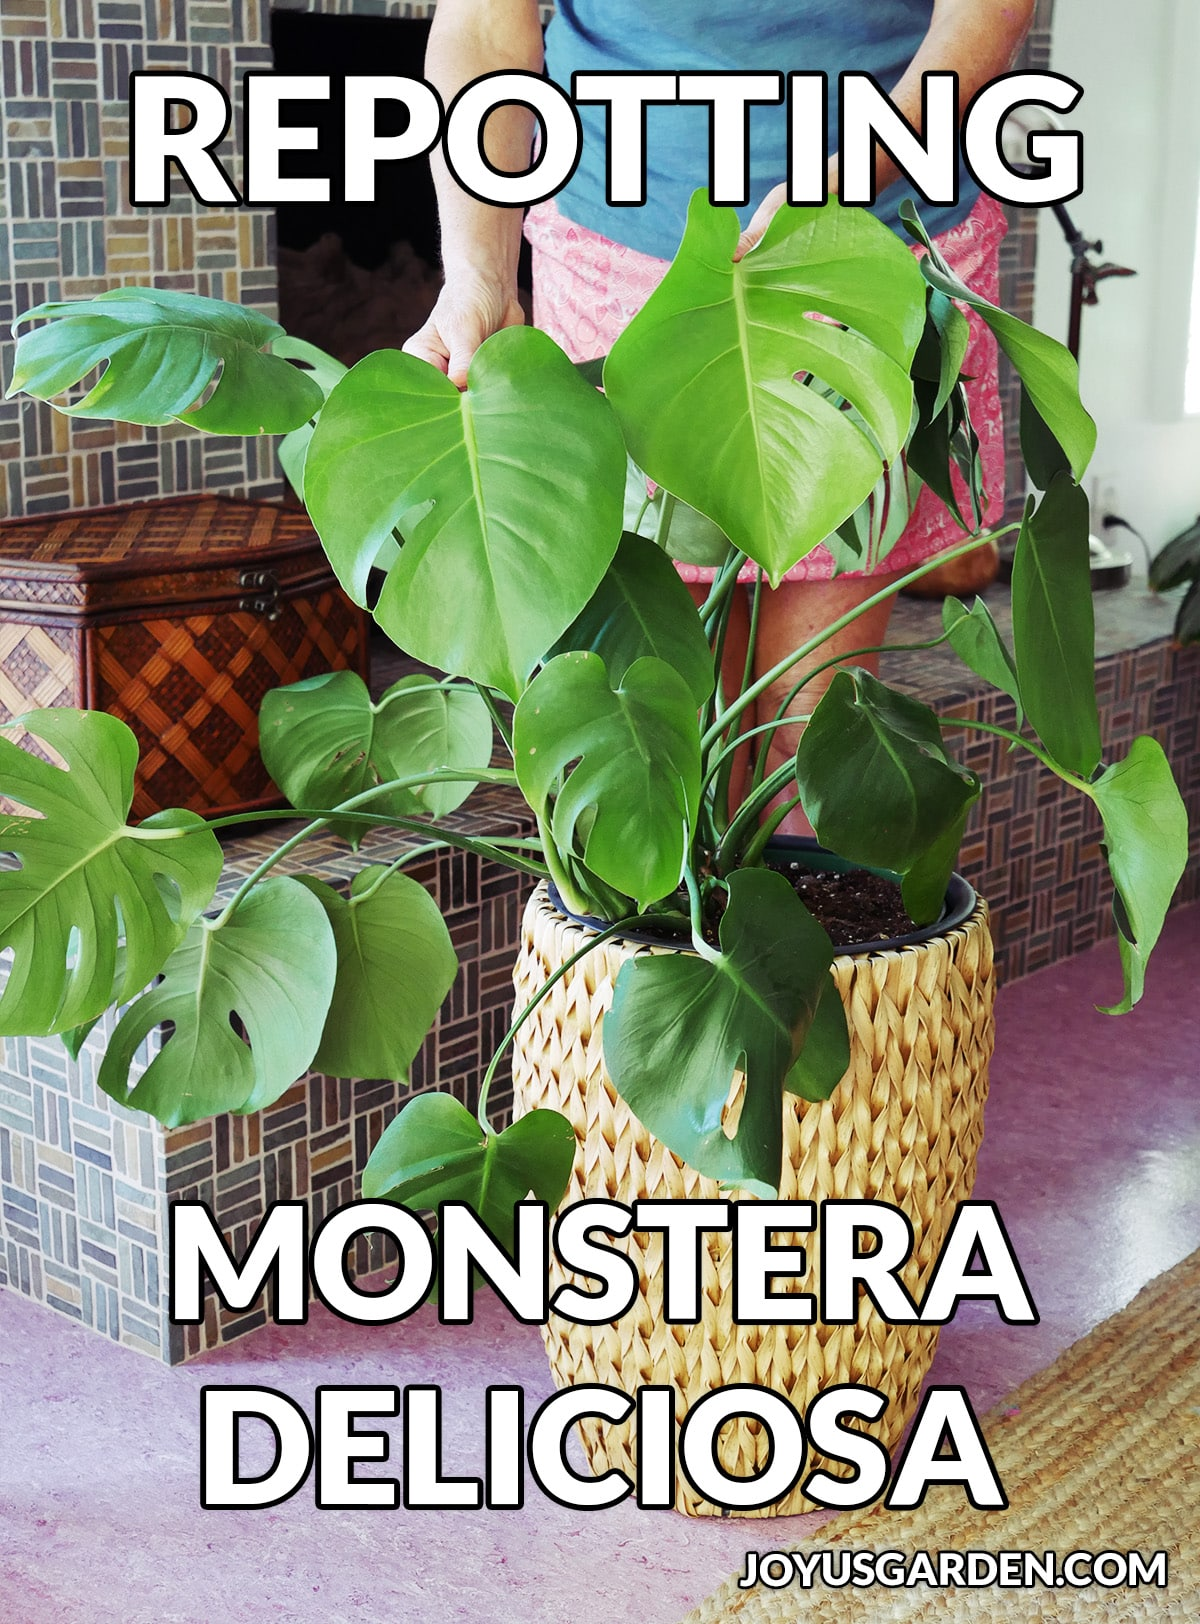 A monstera deliciosa swiss cheese plant grows in a tall basket the text reads repotting monstera deliciosa